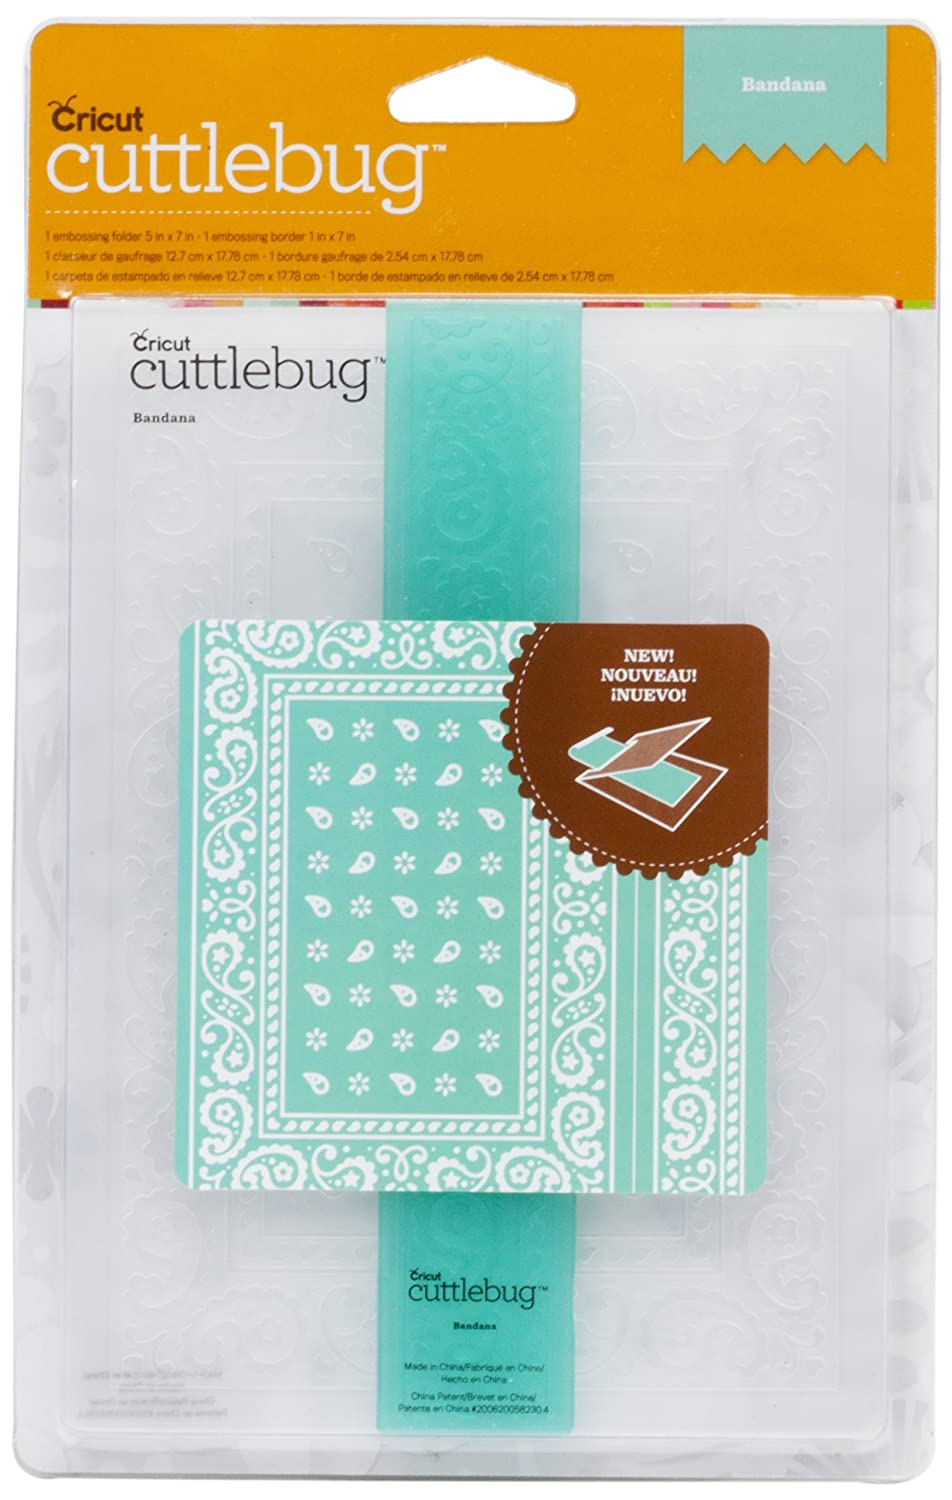 Cuttlebug 2001934 Embossing Folder and Border Paper Crafts, Bandana, 5 by 7-Inch